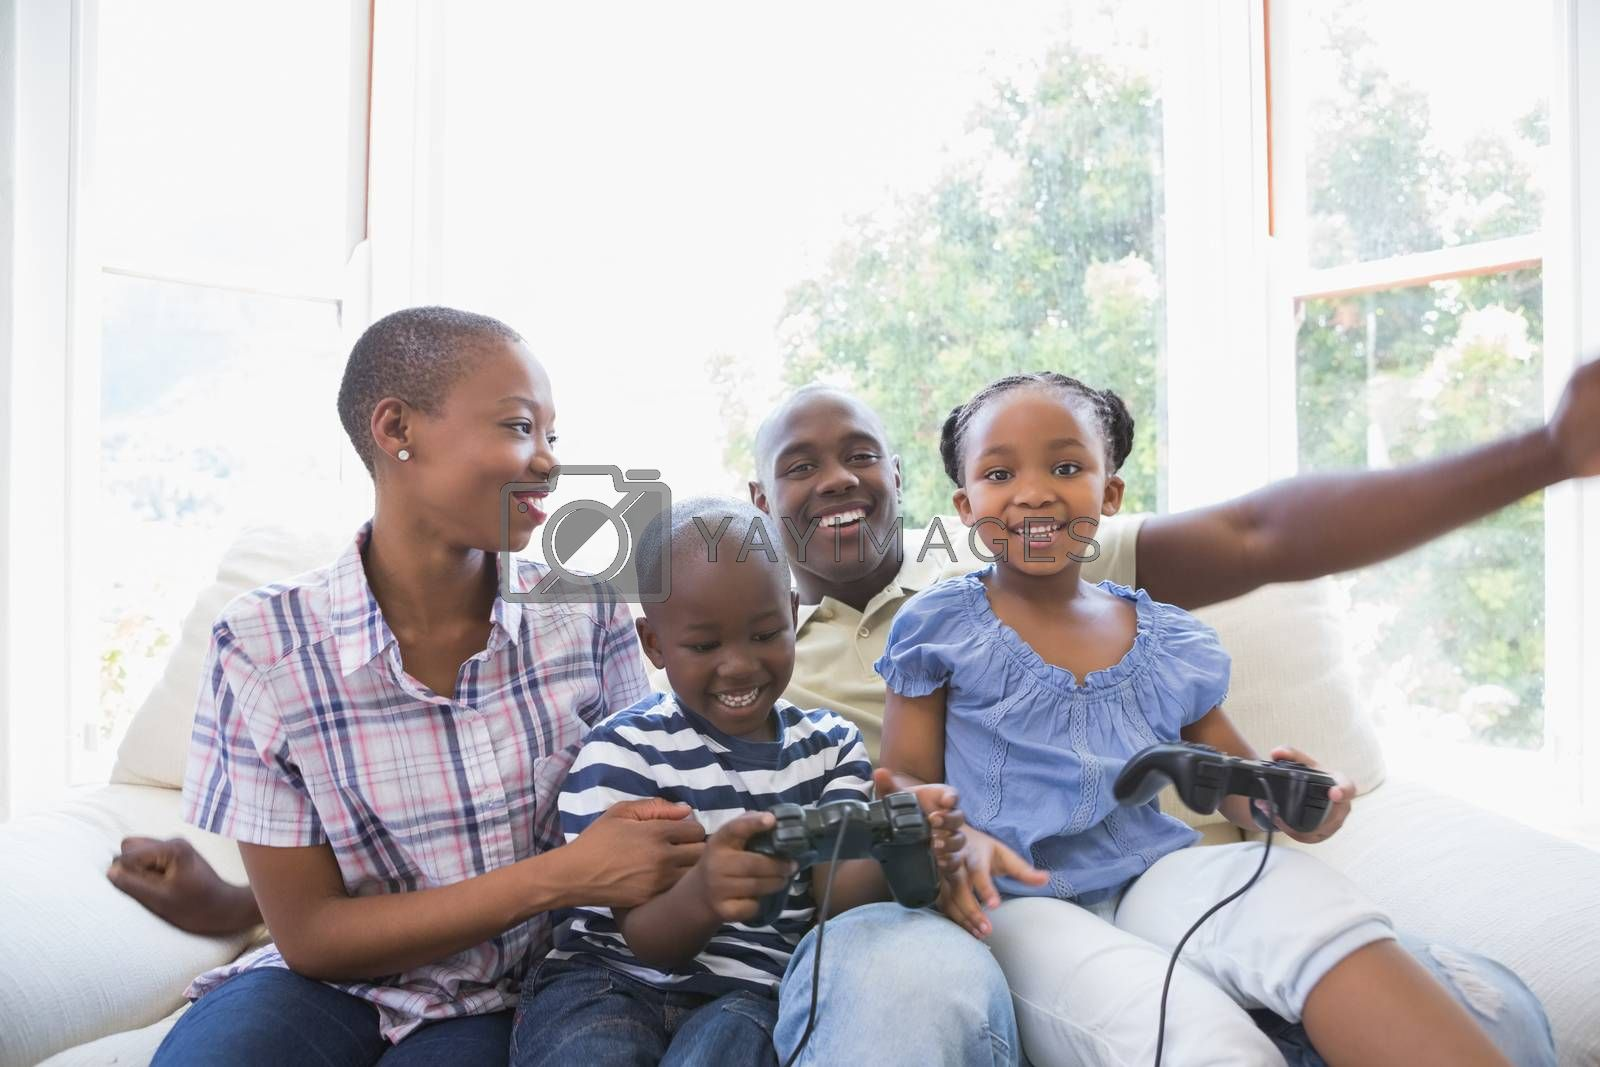 Royalty free image of Happy smiling family playing video games together by Wavebreakmedia